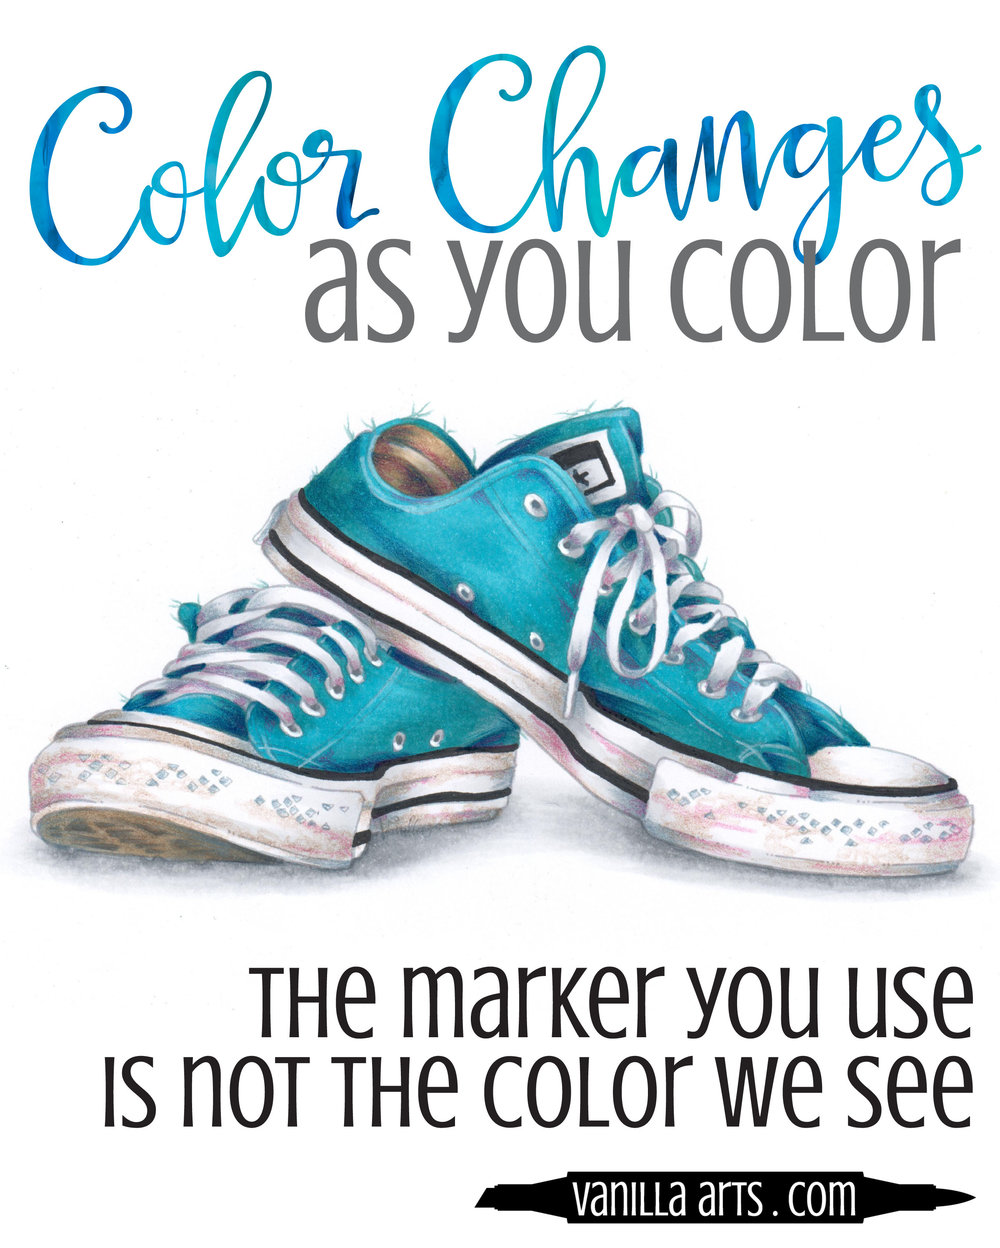 The marker you use is not the color we see! Learn to balance color. | VanillaArts.com